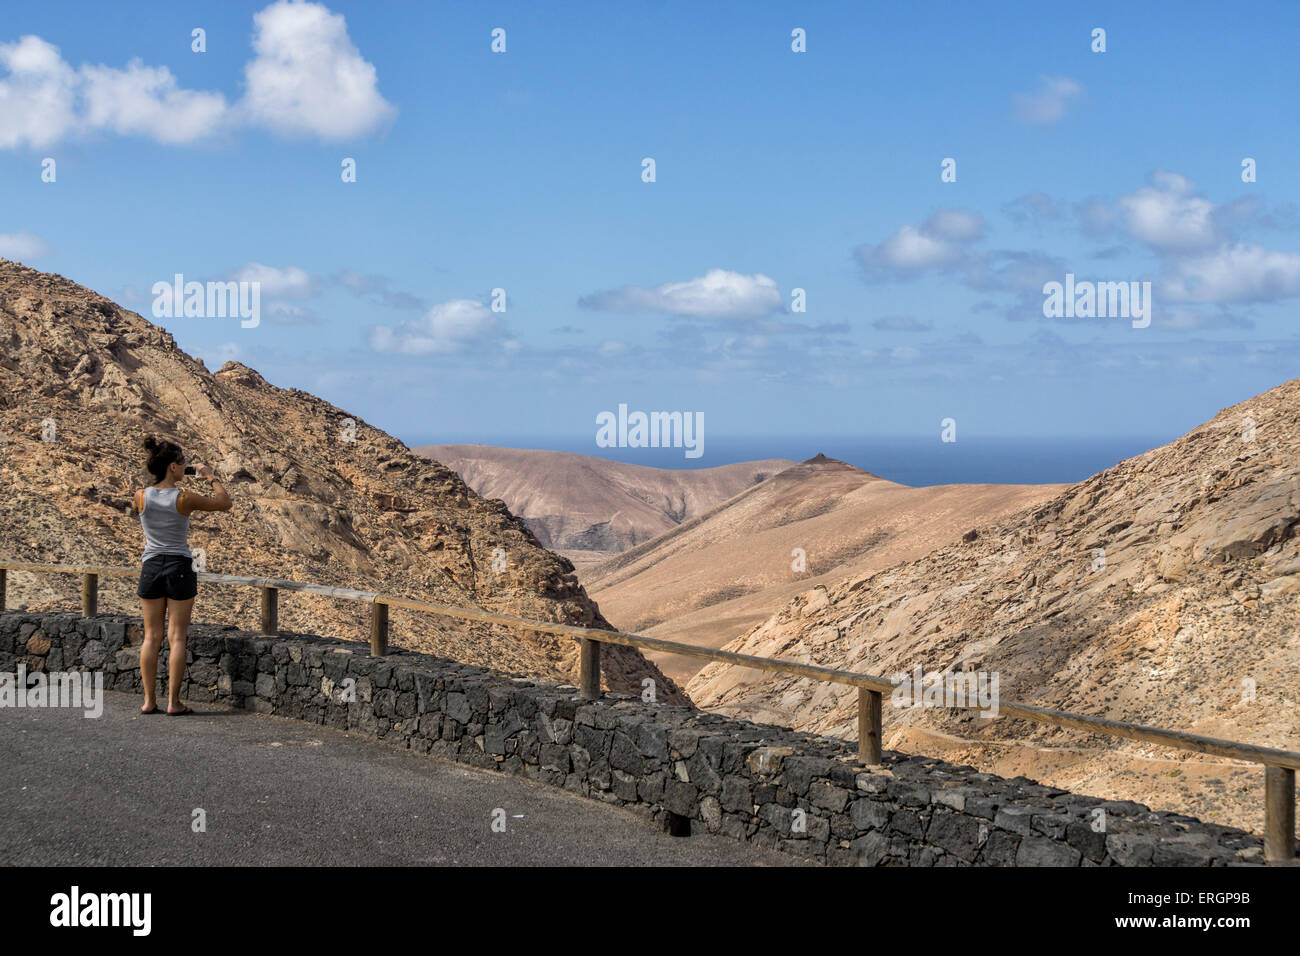 Degollada de Los Granadillos, Viewpoint,  Fuerteventura Canary Islands, Spain Stock Photo